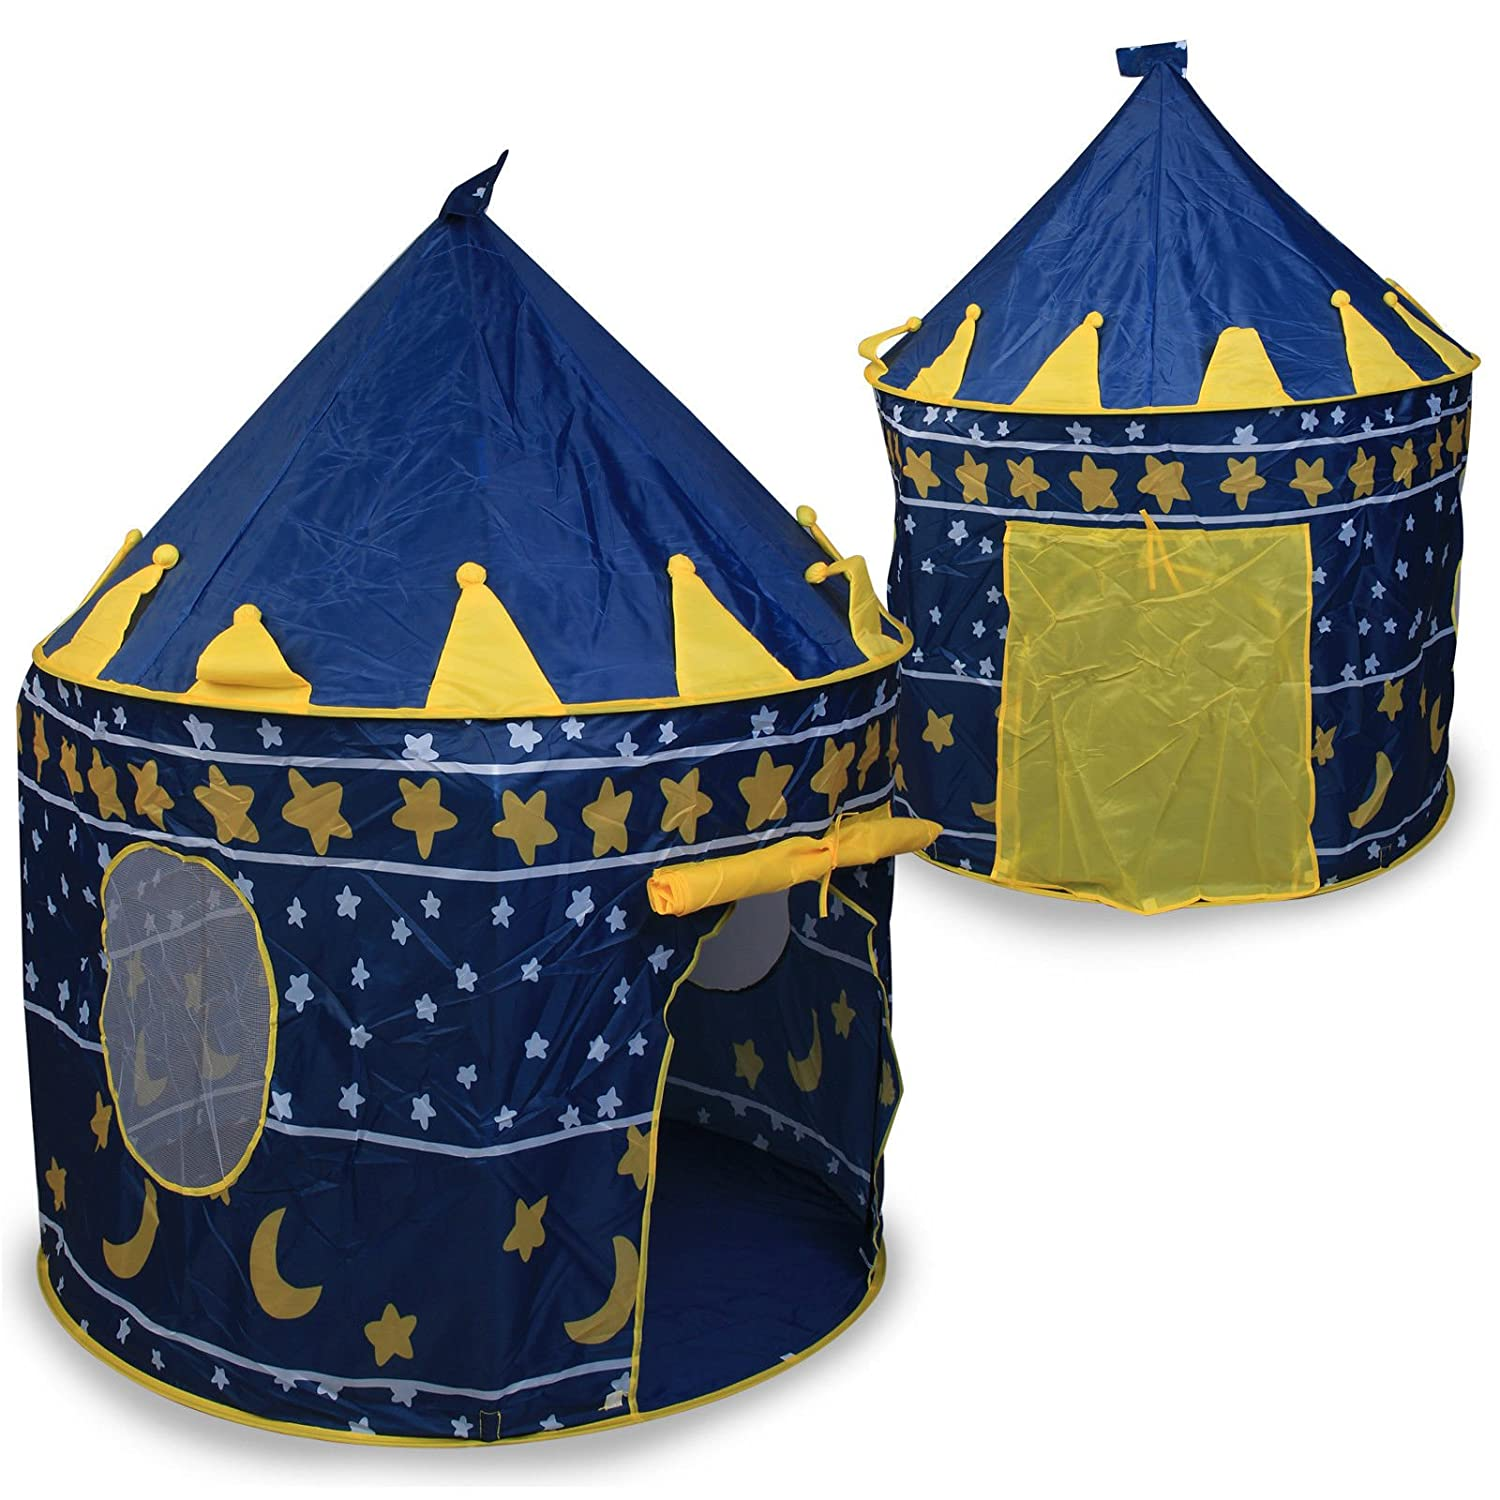 Global Sales Store - Prince or princess summer Palace Castle Children kids Play Tent house indoor or outdoor garden toy wendy house playhouse beach sun tent boys girls (Blue Wizard)